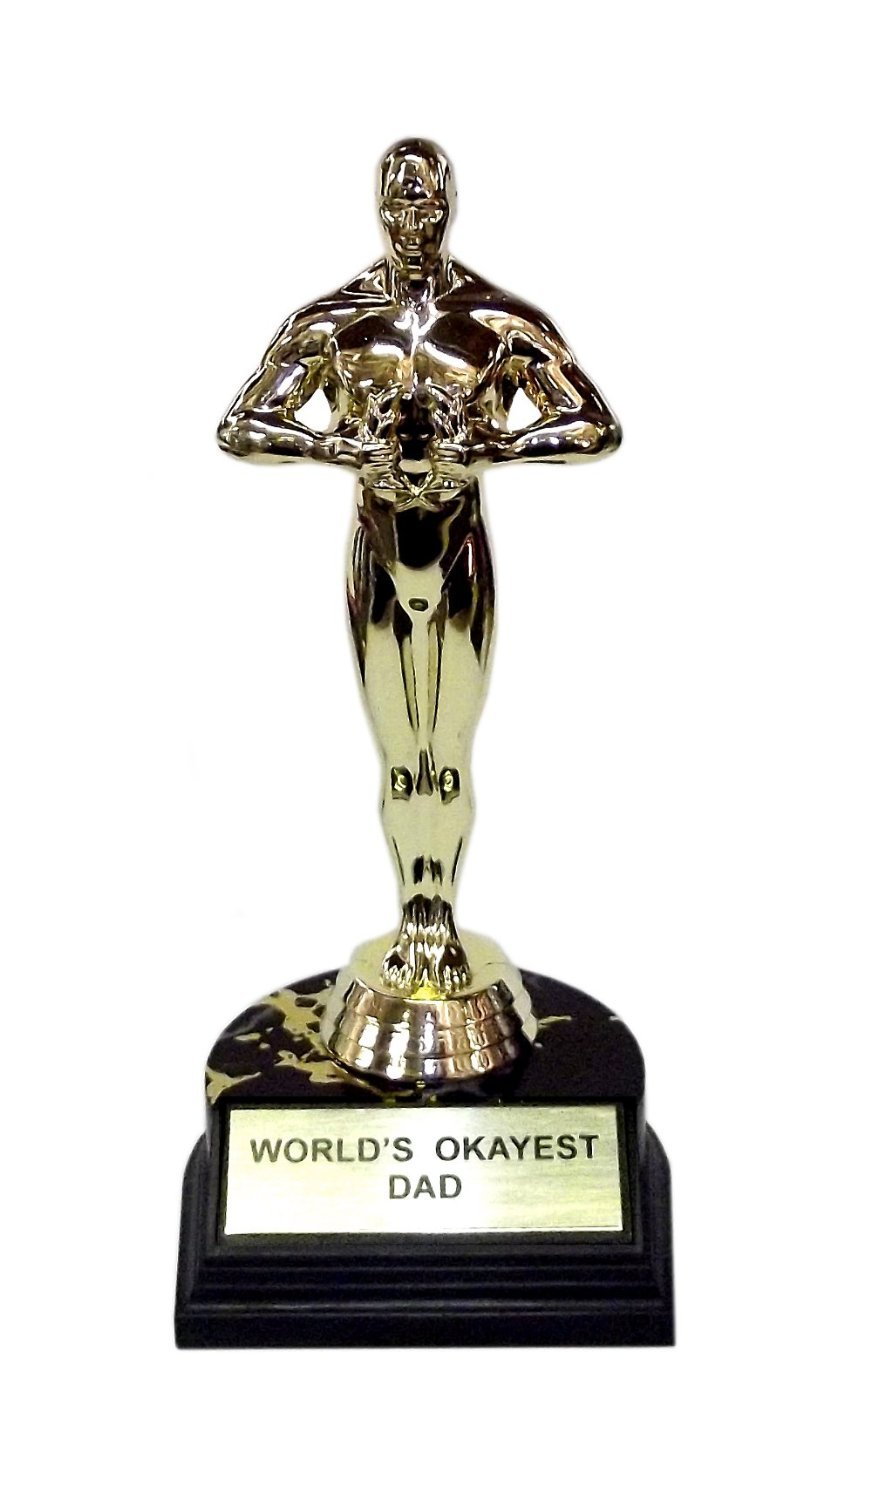 World's Okayest Dad Trophy-7''H x 3.25''L x 3.25''W